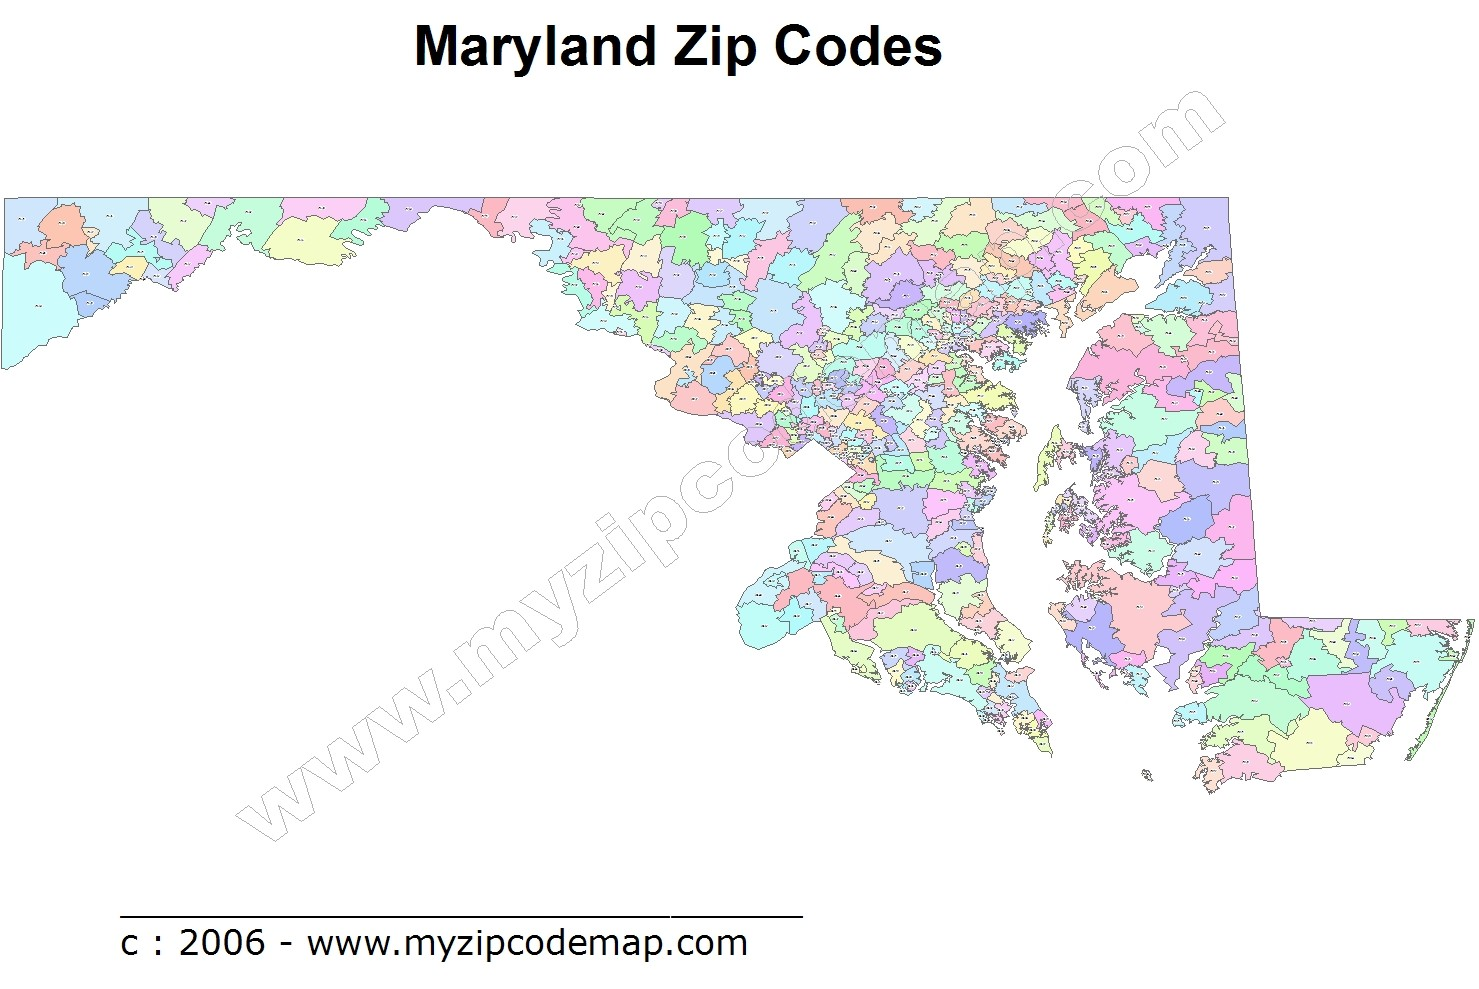 Maryland (MD) Zip Code Map